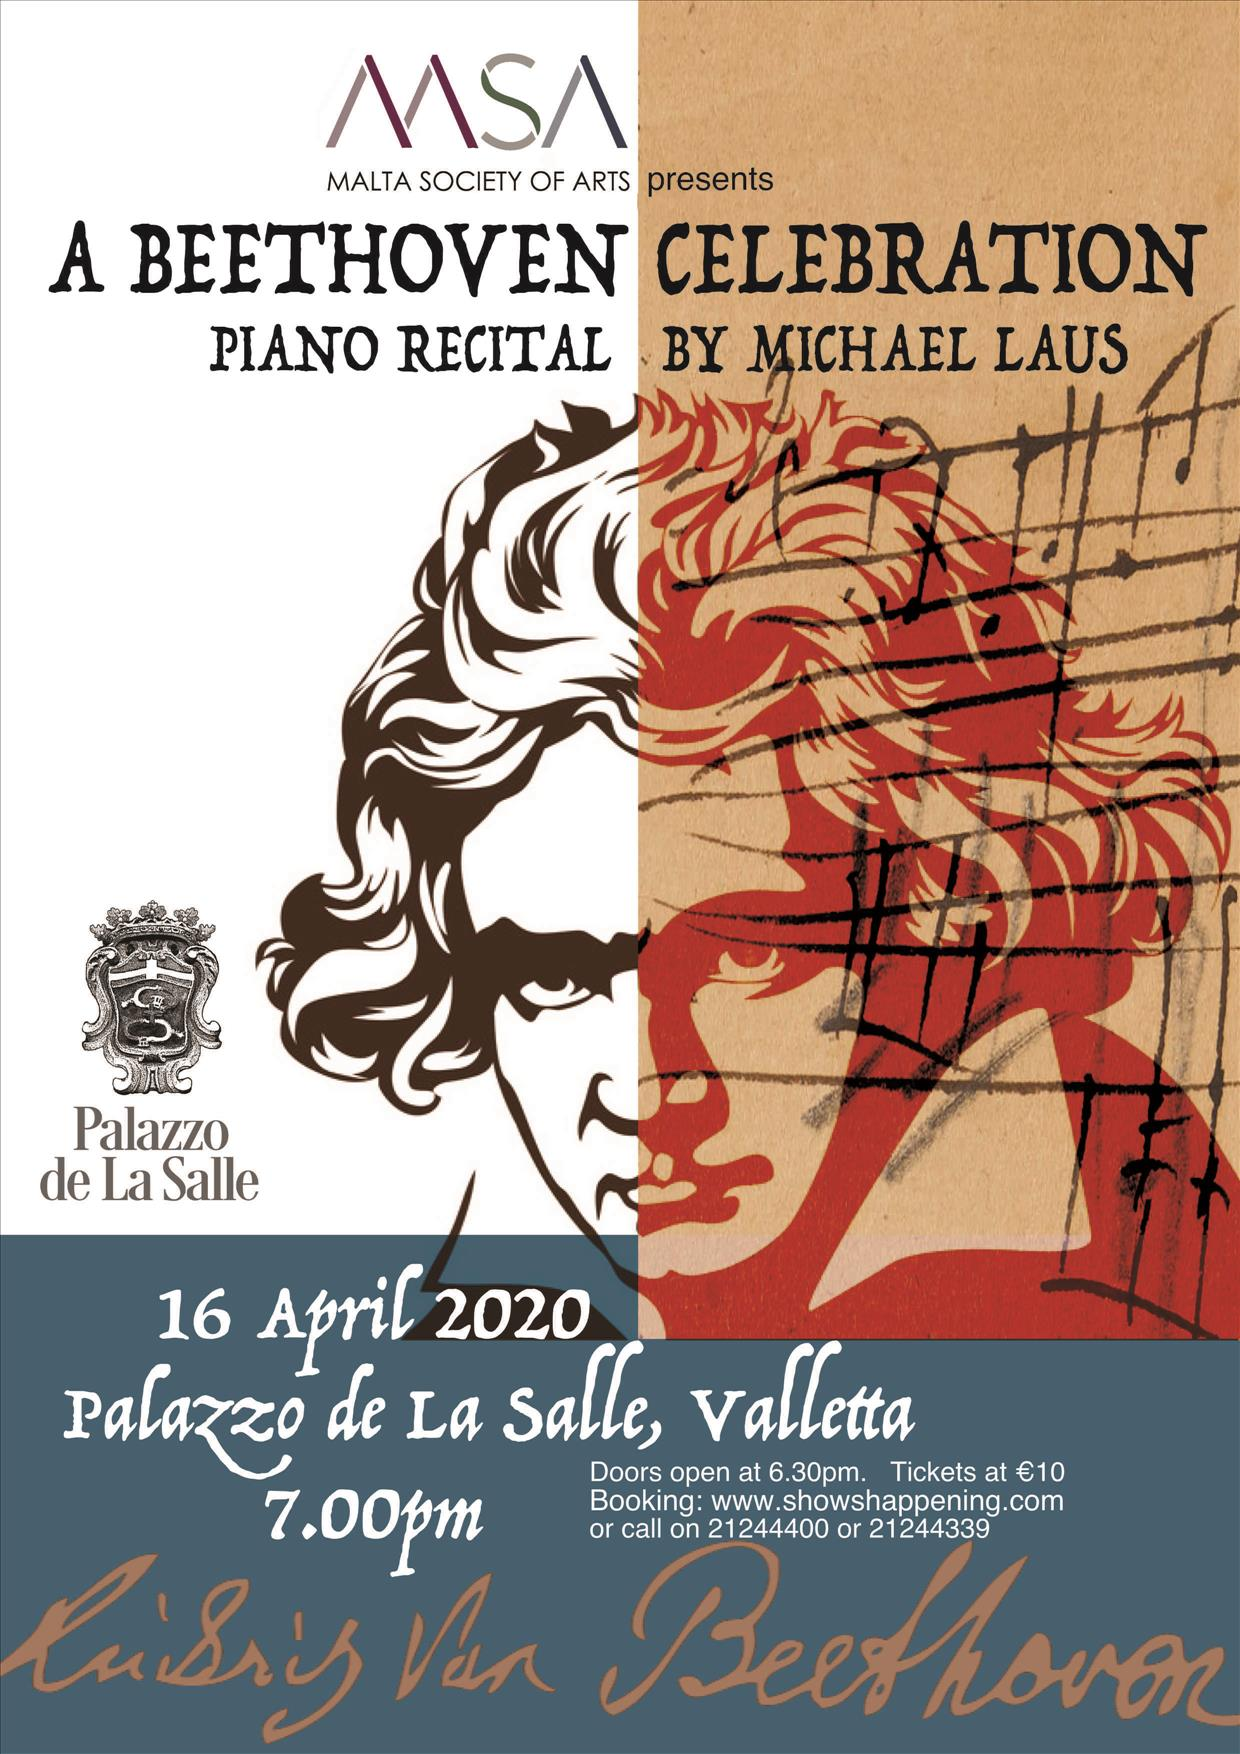 A Beethoven Celebration - Piano Recital by Michael Laus flyer